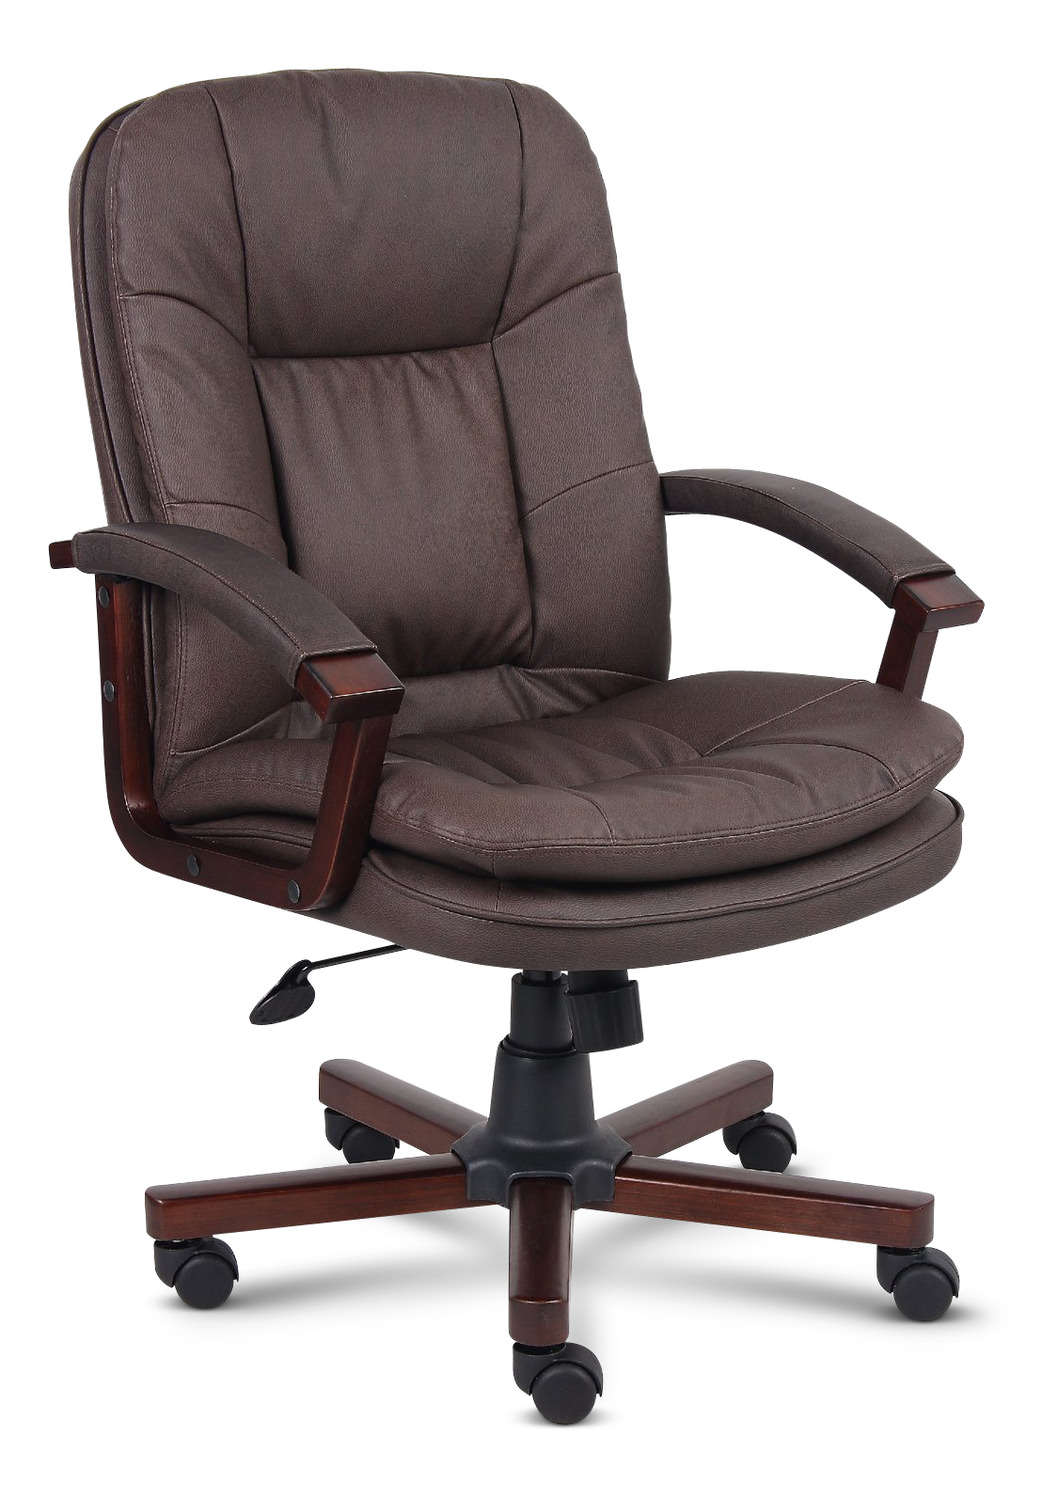 Stupendous Brown Bomber Leather Office Chair Interior Design Ideas Inesswwsoteloinfo